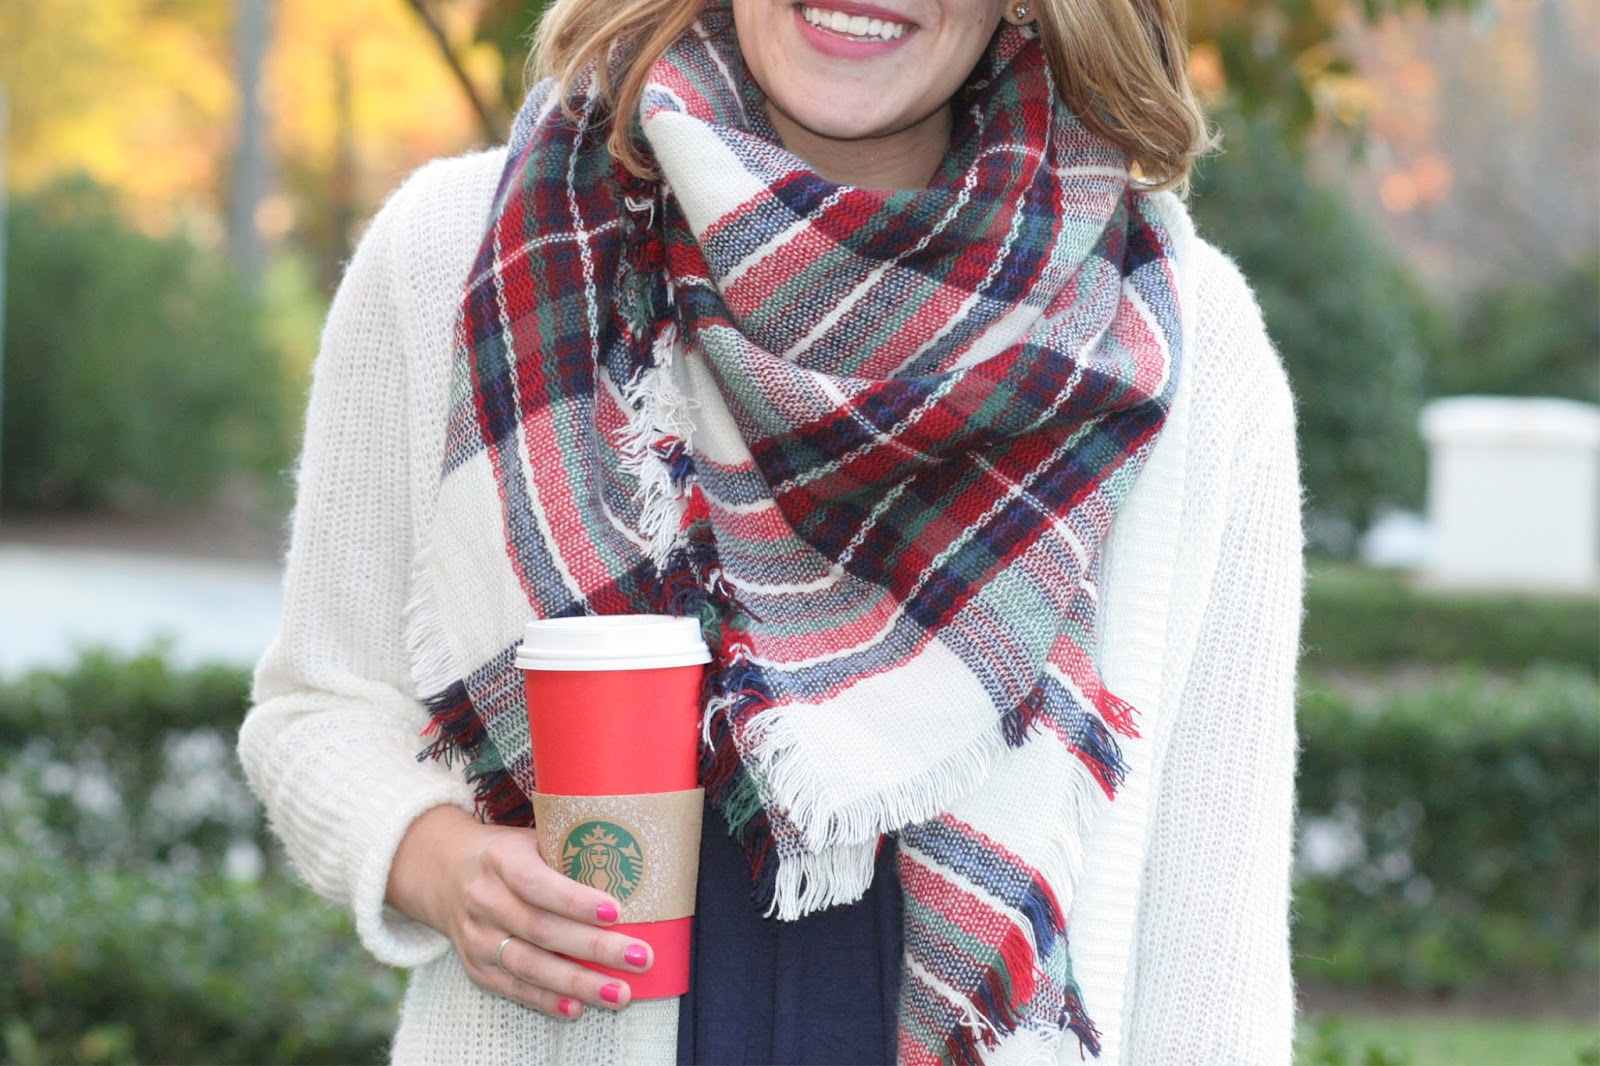 67e3a44aedd88 Blanket Scarf & Cardigan Layers - Sara Kate Styling